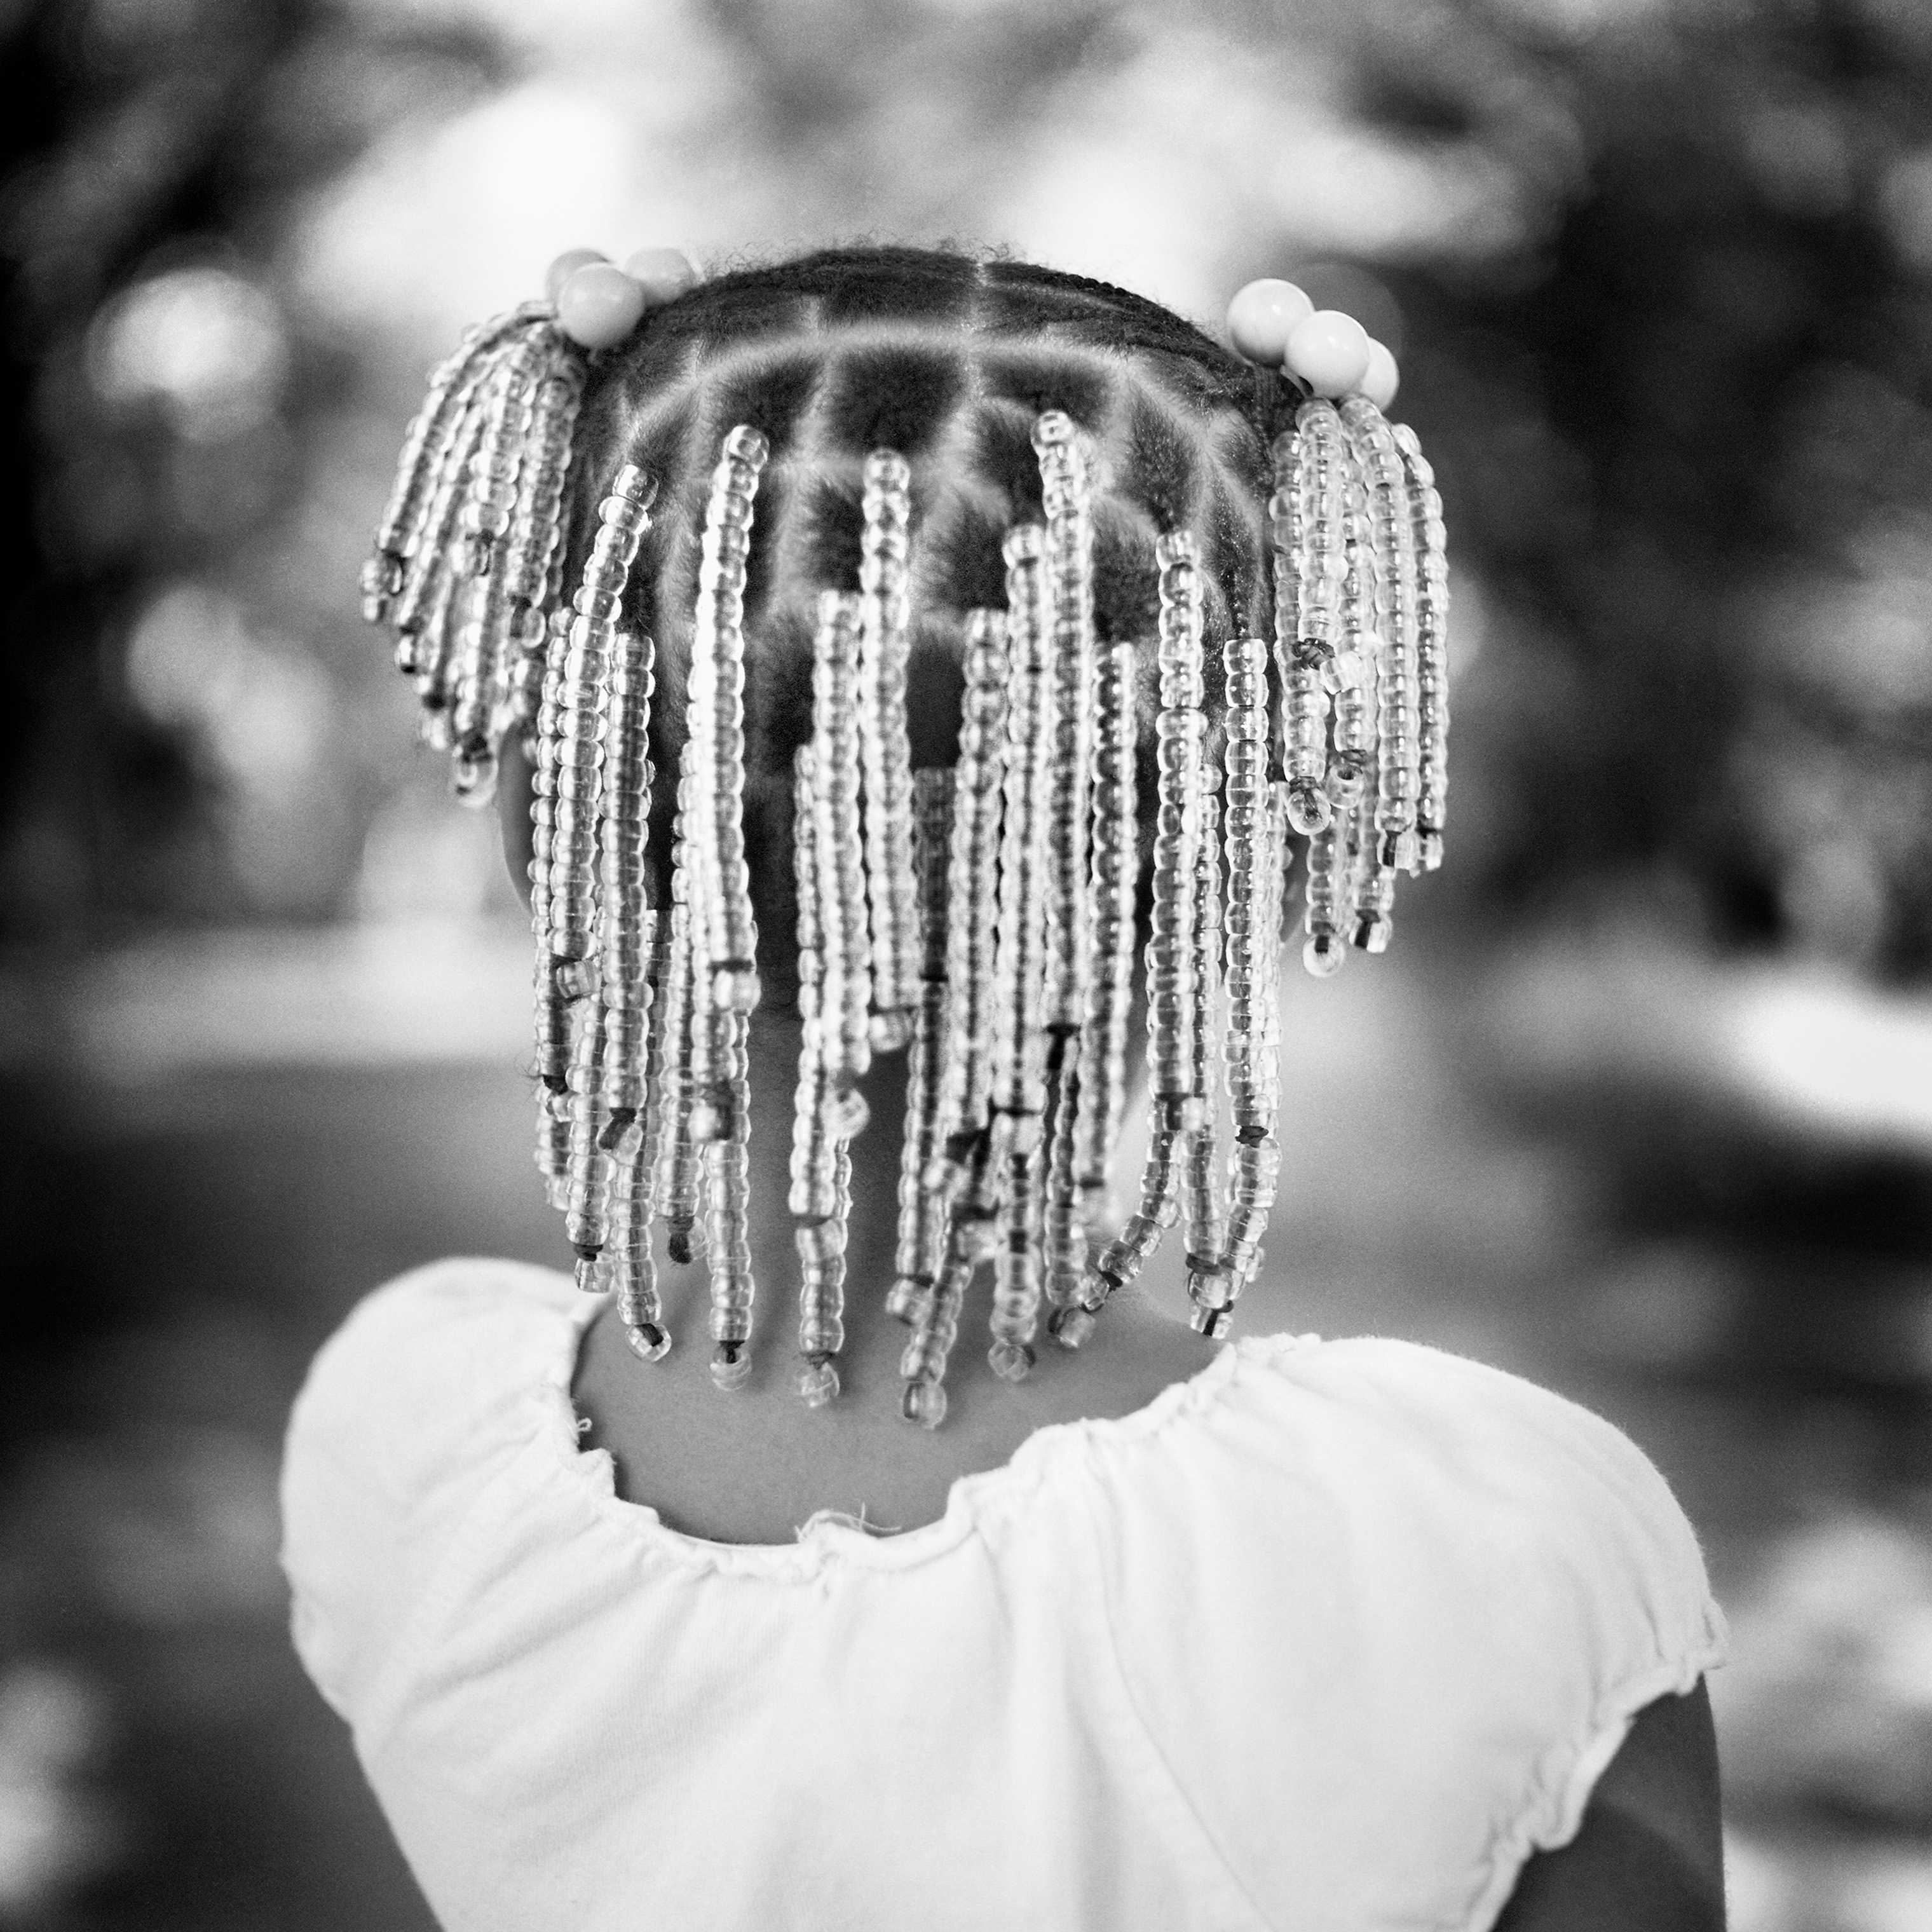 Maw Maw's New Braids, Duncan, Miss., from the  In That Land of Perfect Day  book, featured in the  Southbound  exhibition.